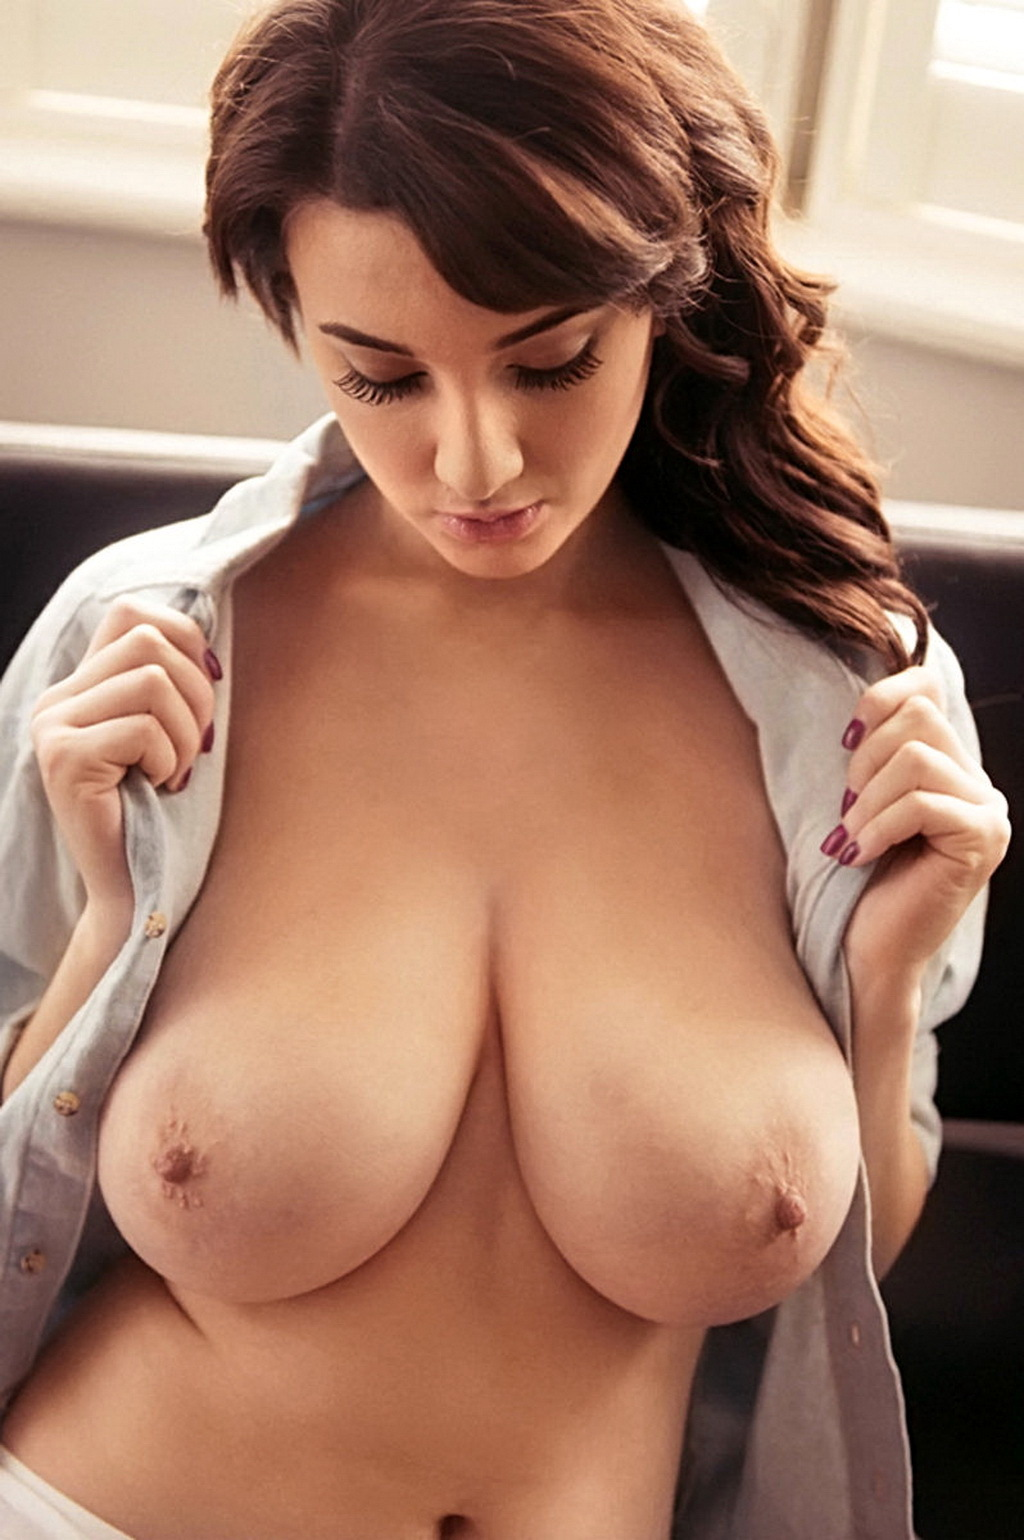 All natural boobs girls 12